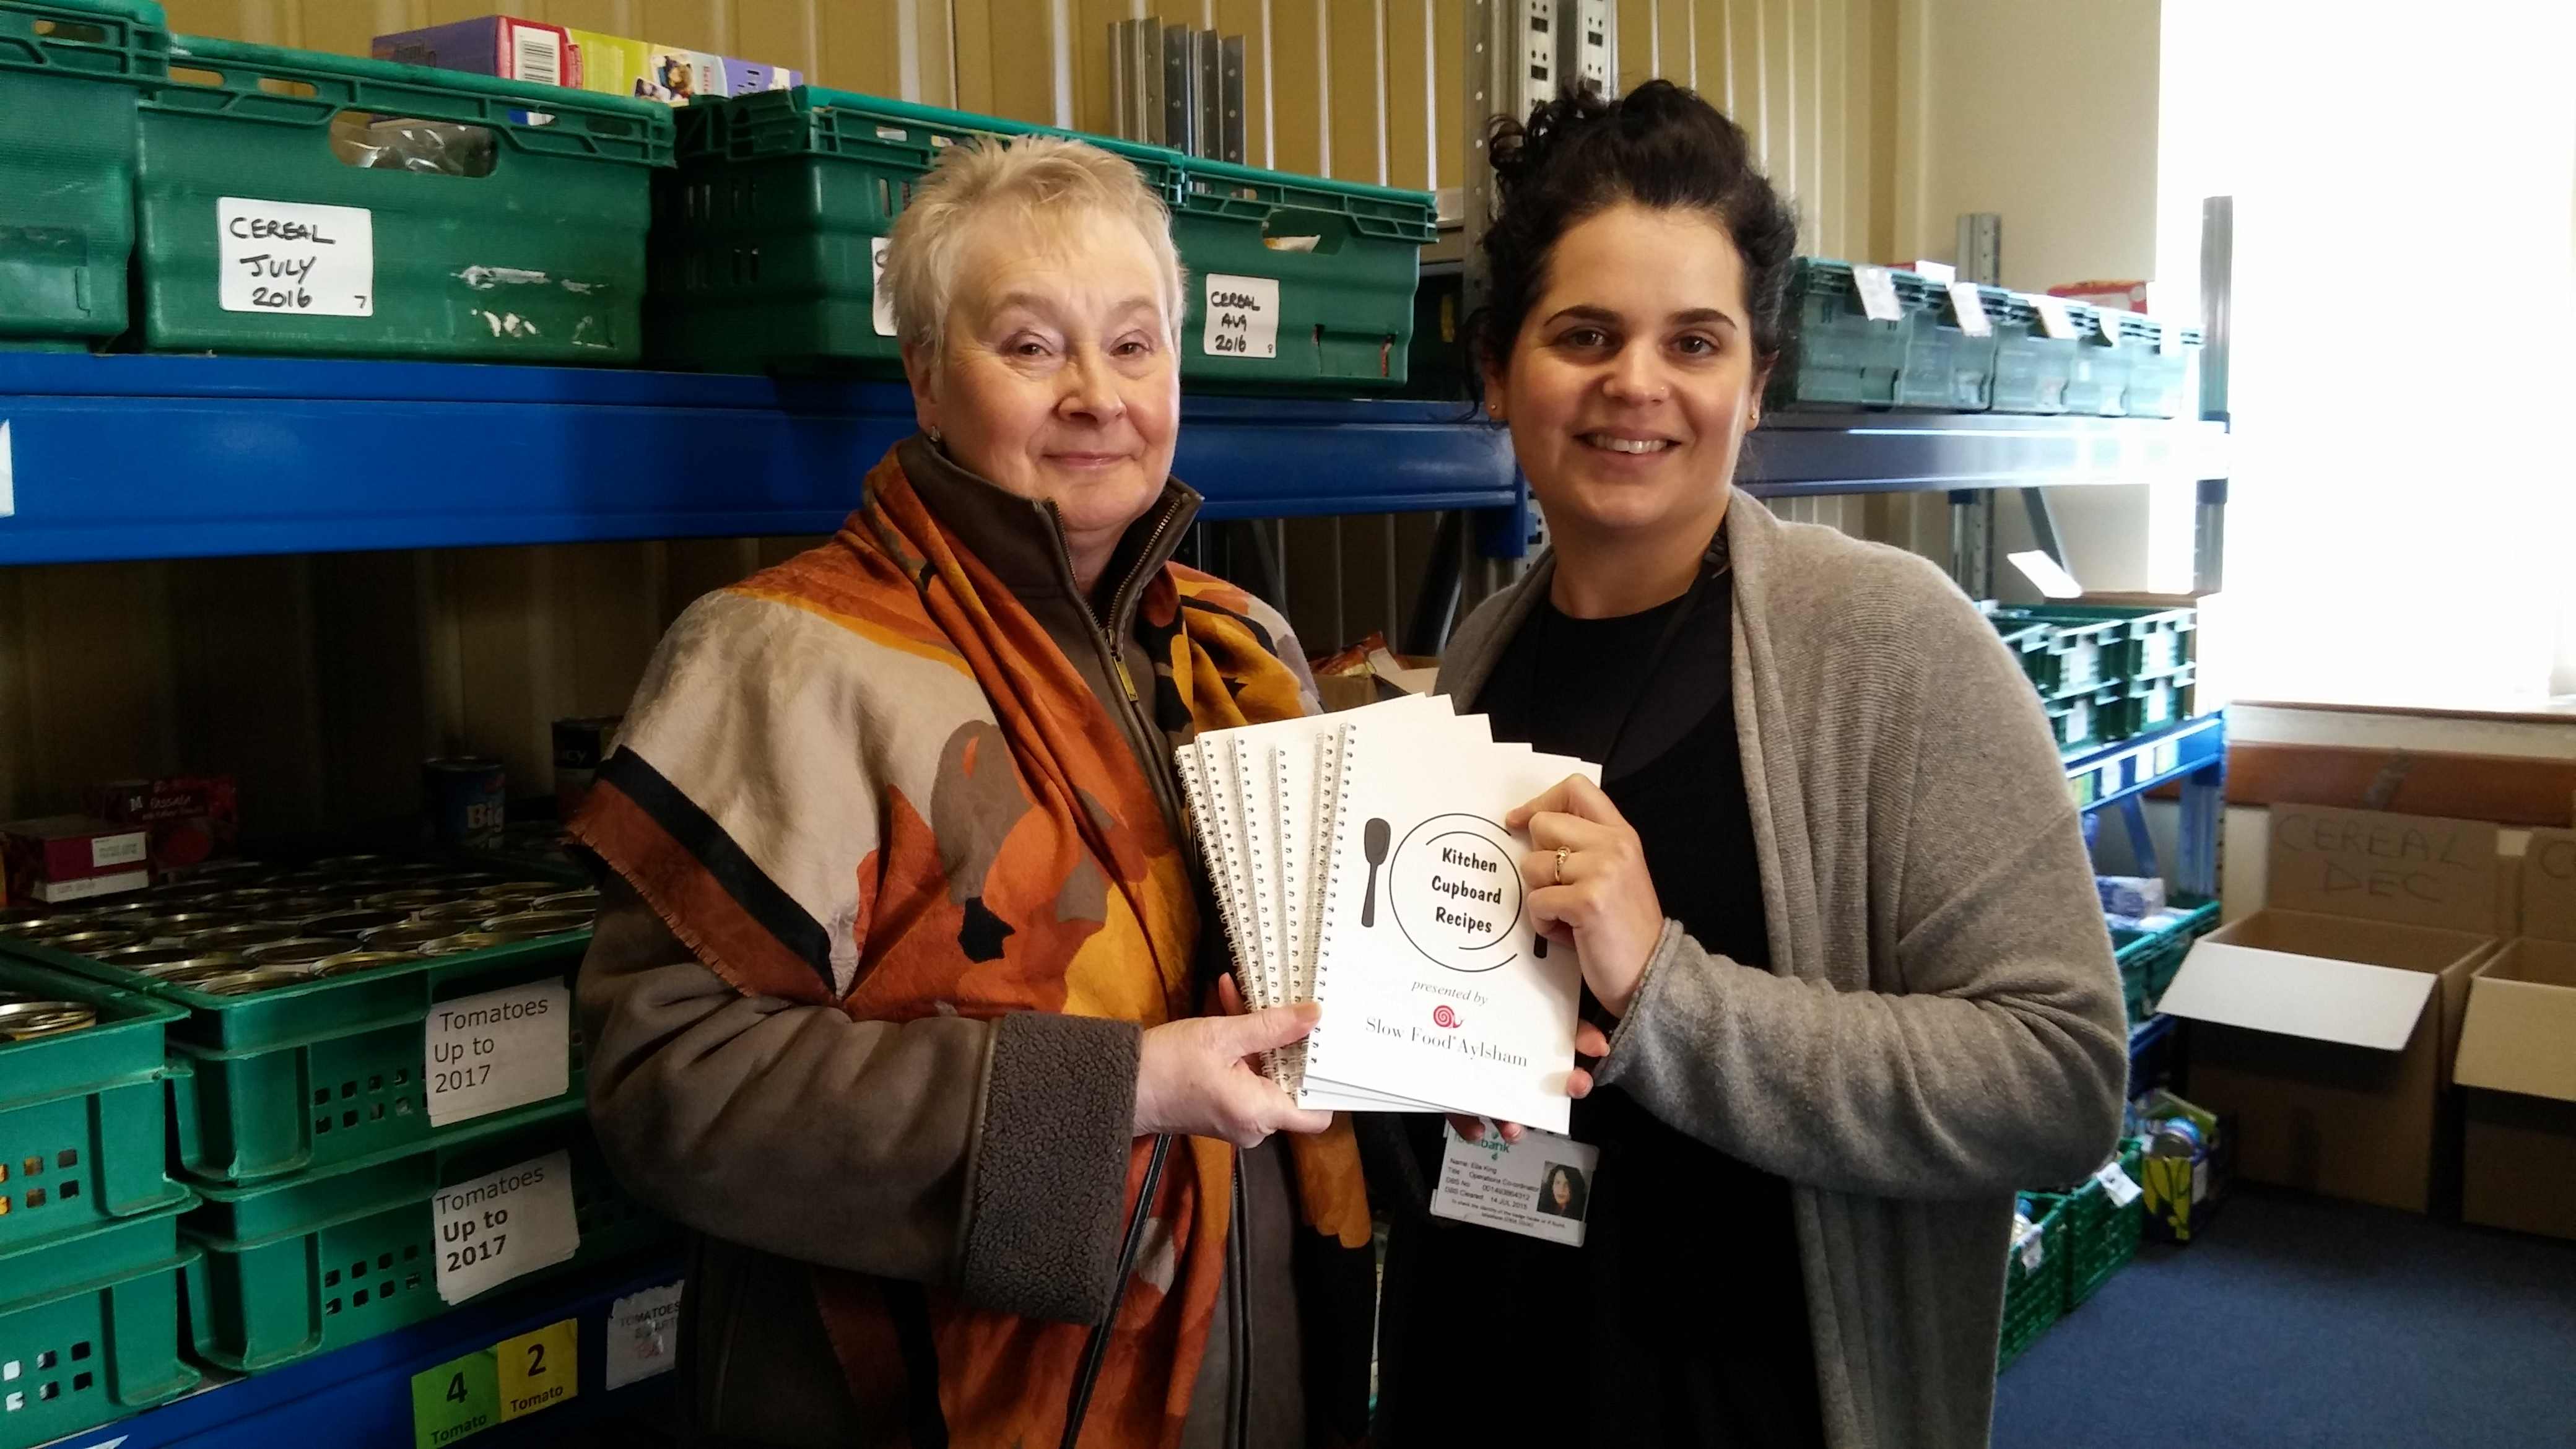 Slow food aylsham donates 100 recipe books to foodbank cromer district foodbank project manager ella king right received the recipe booklets forumfinder Gallery